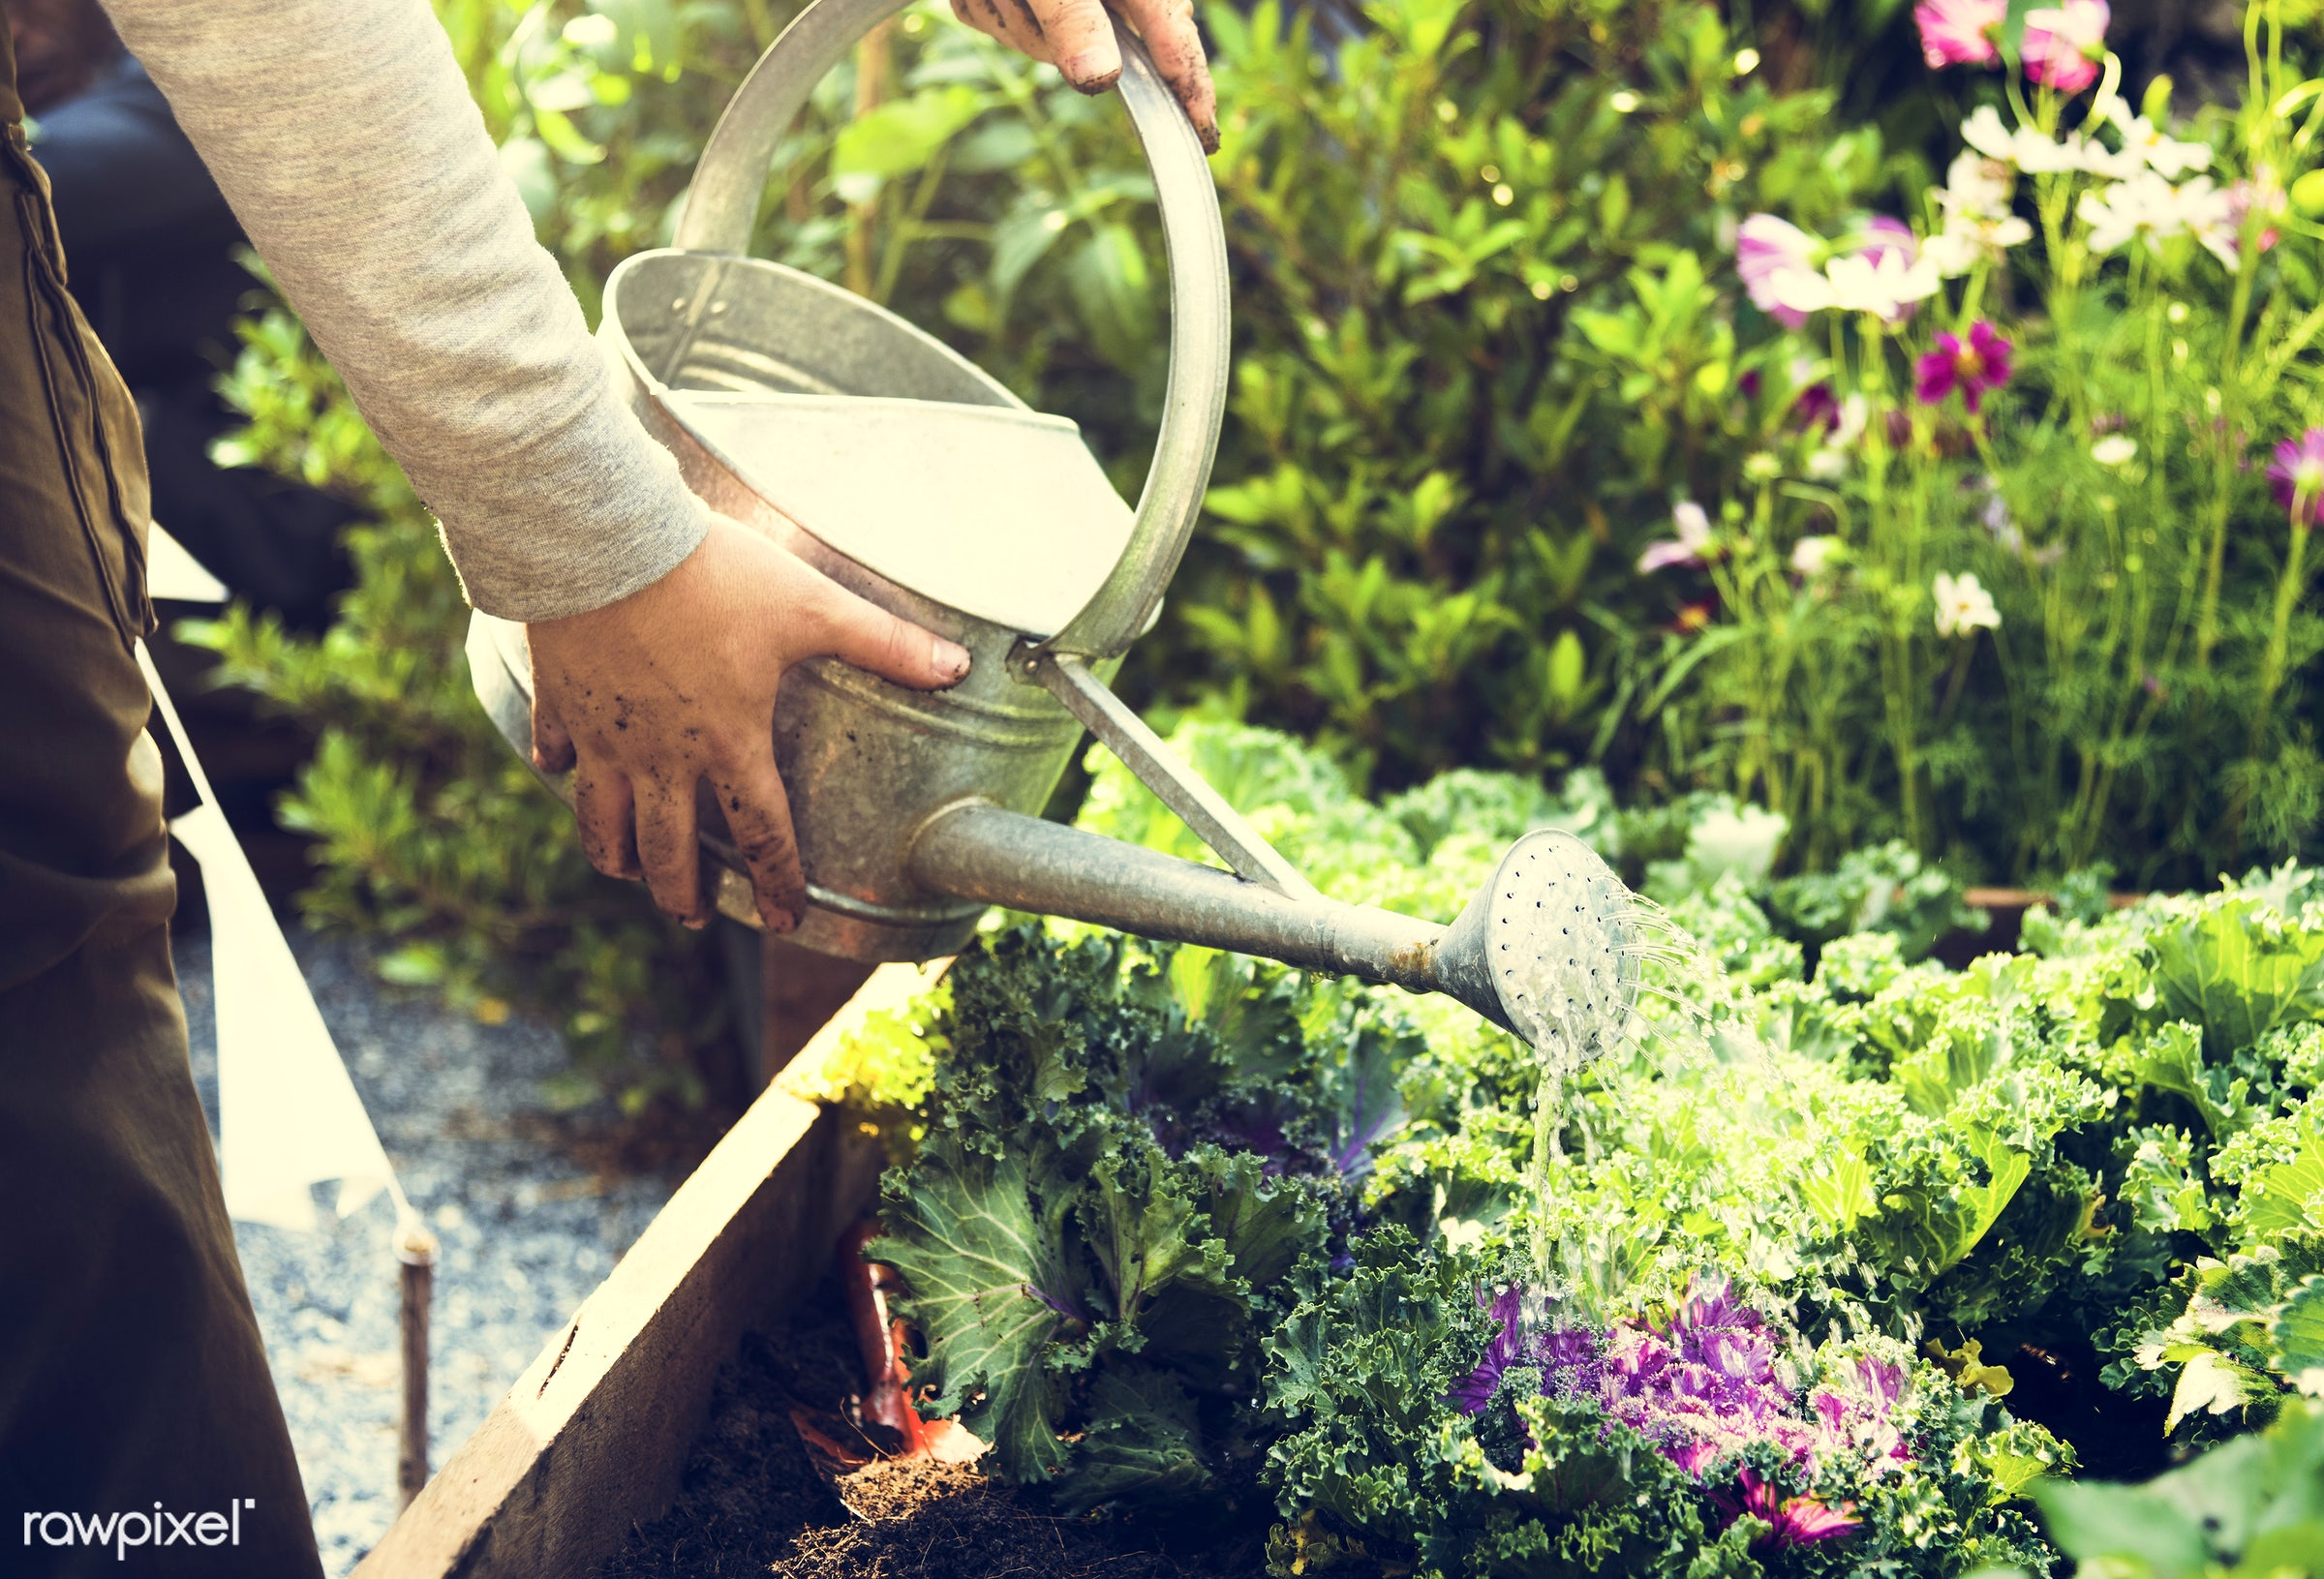 watering, plant, person, plants, leaves, people, farm, hand, tree, farmer, fresh, hands, dirt, wooden box, green, planting,...